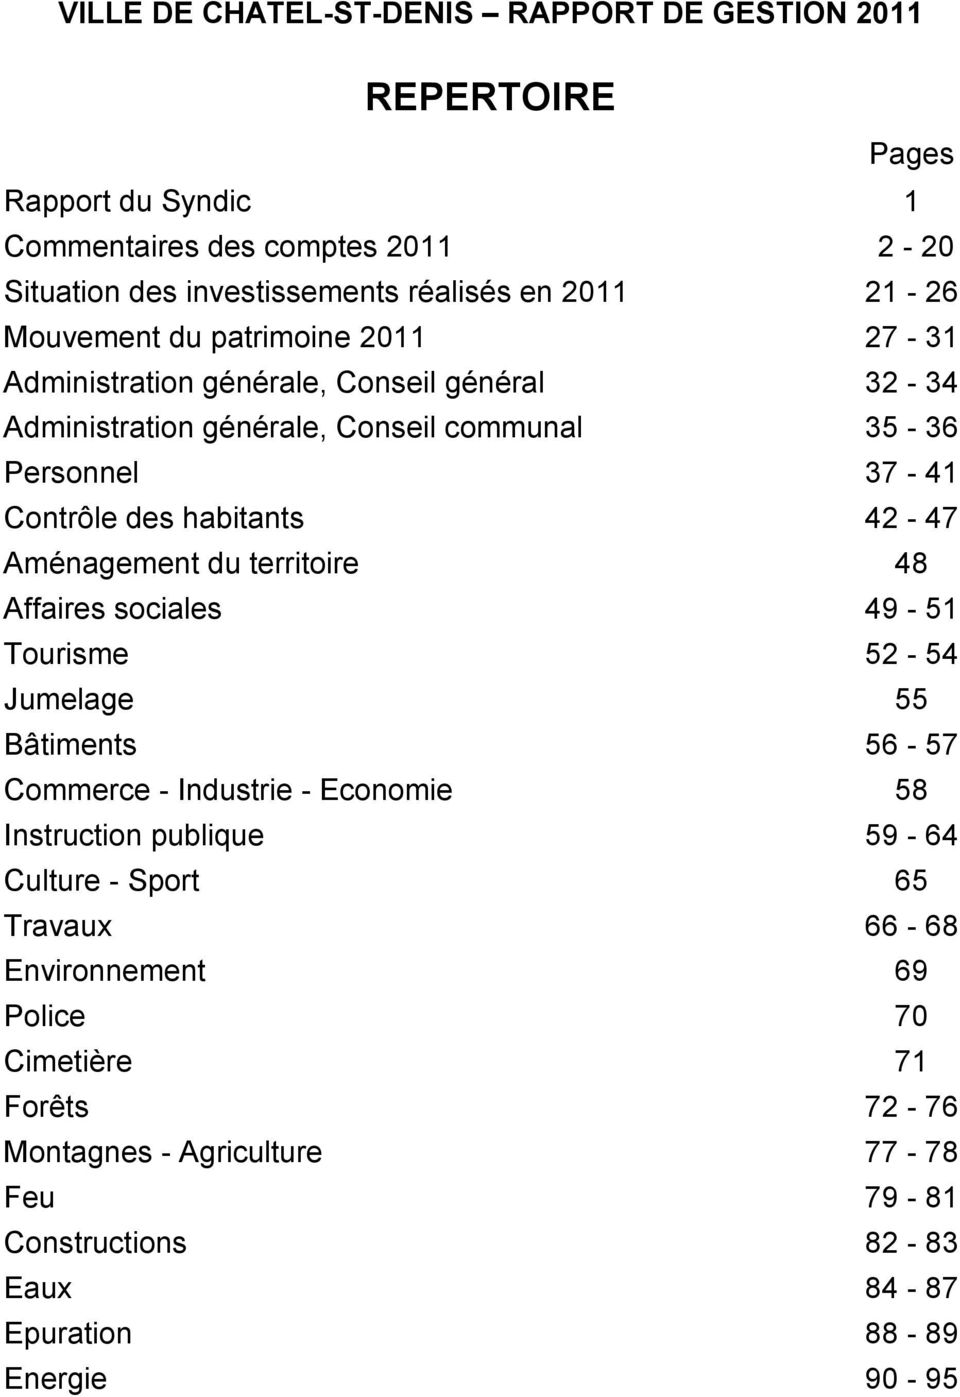 42-47 Aménagement du territoire 48 Affaires sociales 49-51 Tourisme 52-54 Jumelage 55 Bâtiments 56-57 Commerce - Industrie - Economie 58 Instruction publique 59-64 Culture